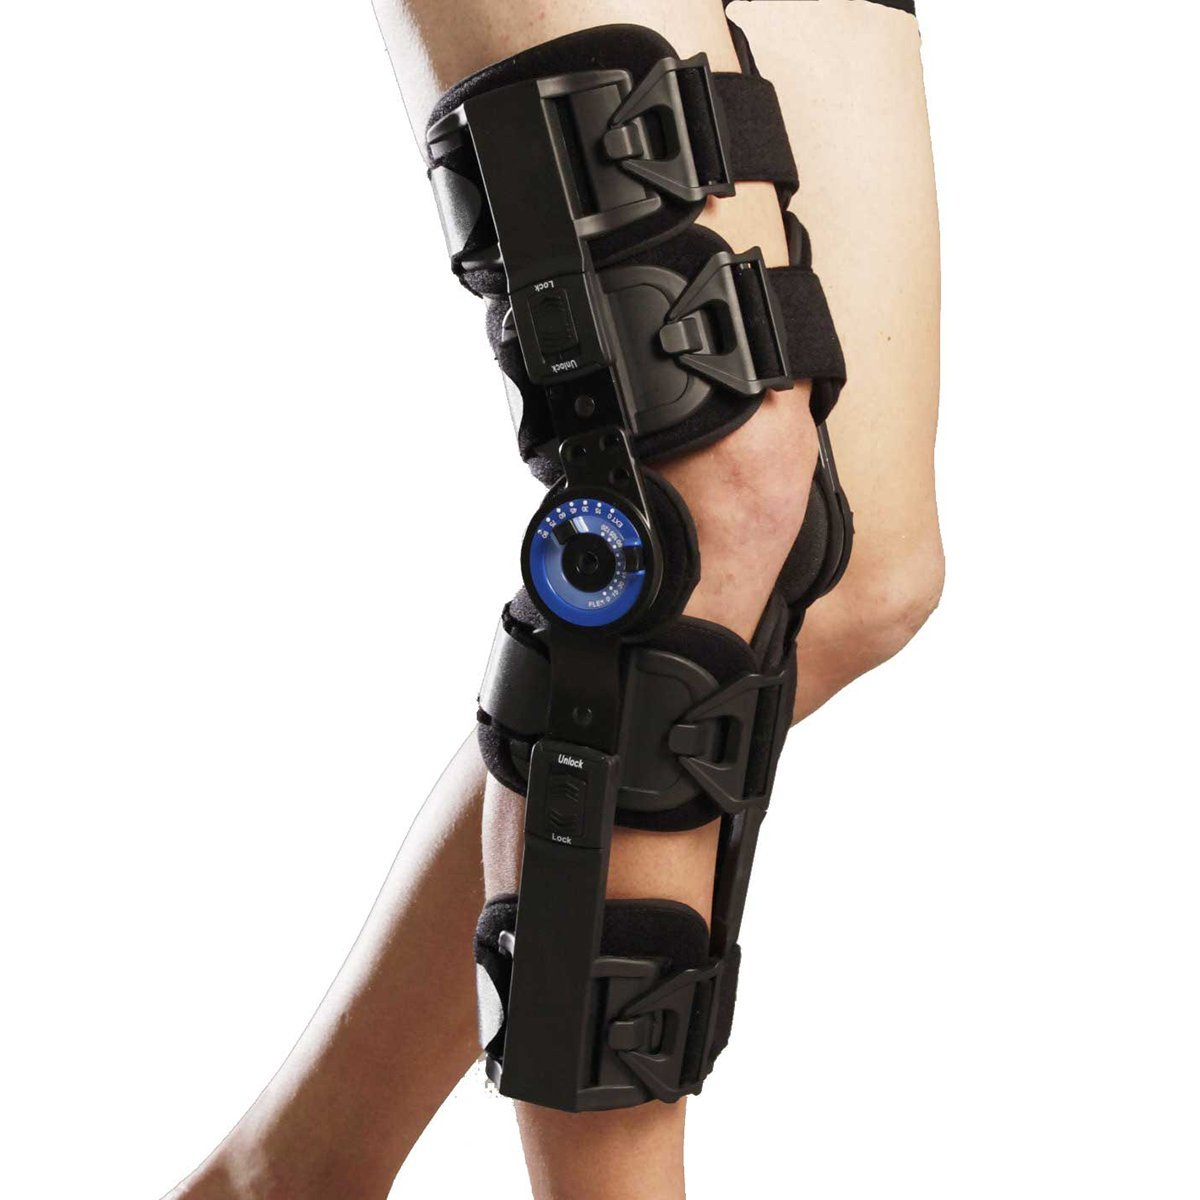 Orthomen Hinged ROM Knee Brace, Post Op Knee Brace for Recovery Stabilization, Adjustable Medical Orthopedic Support Stabilizer After Surgery, Universal - One Size